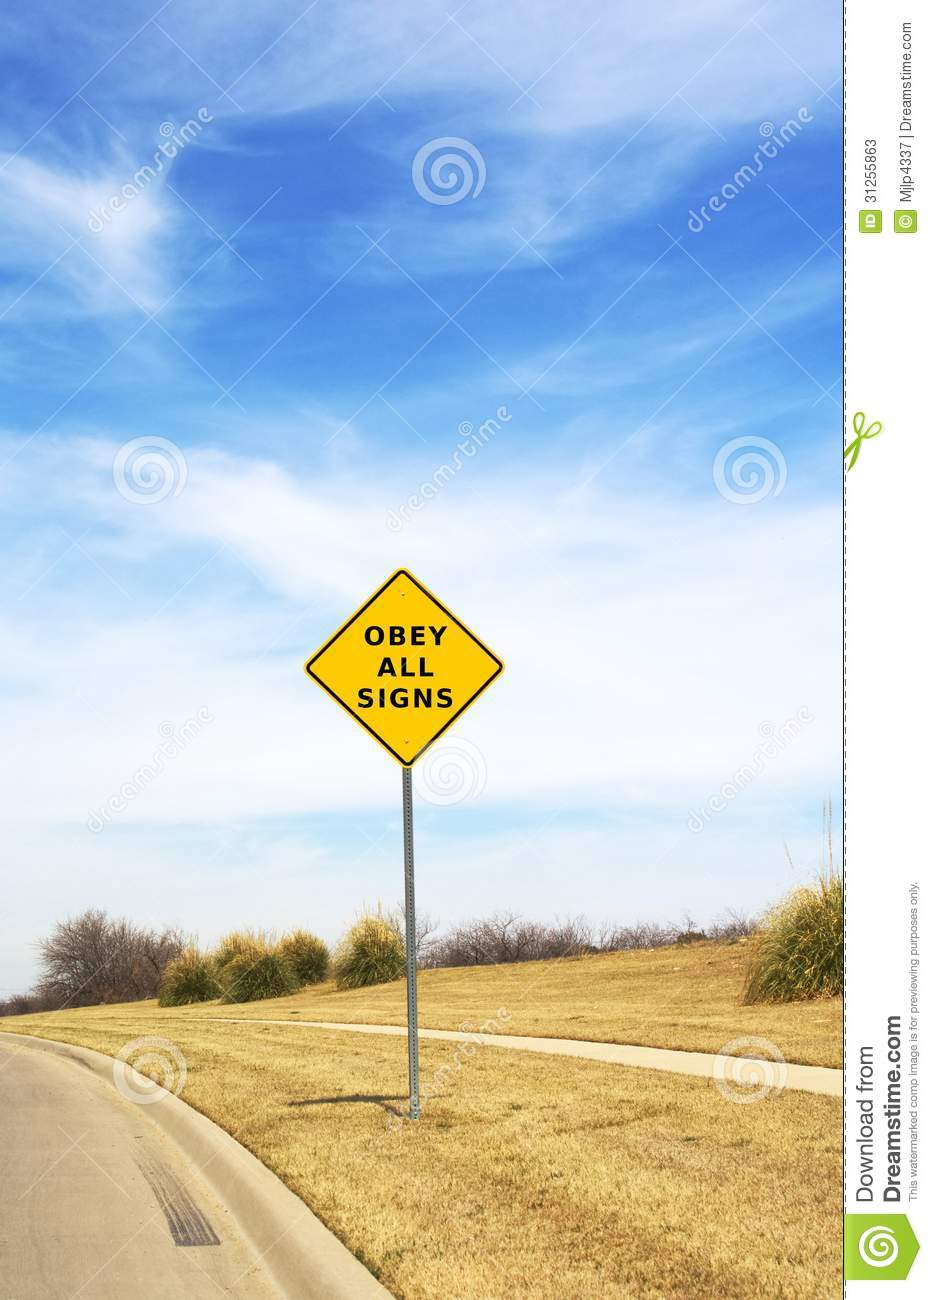 Obey all signs